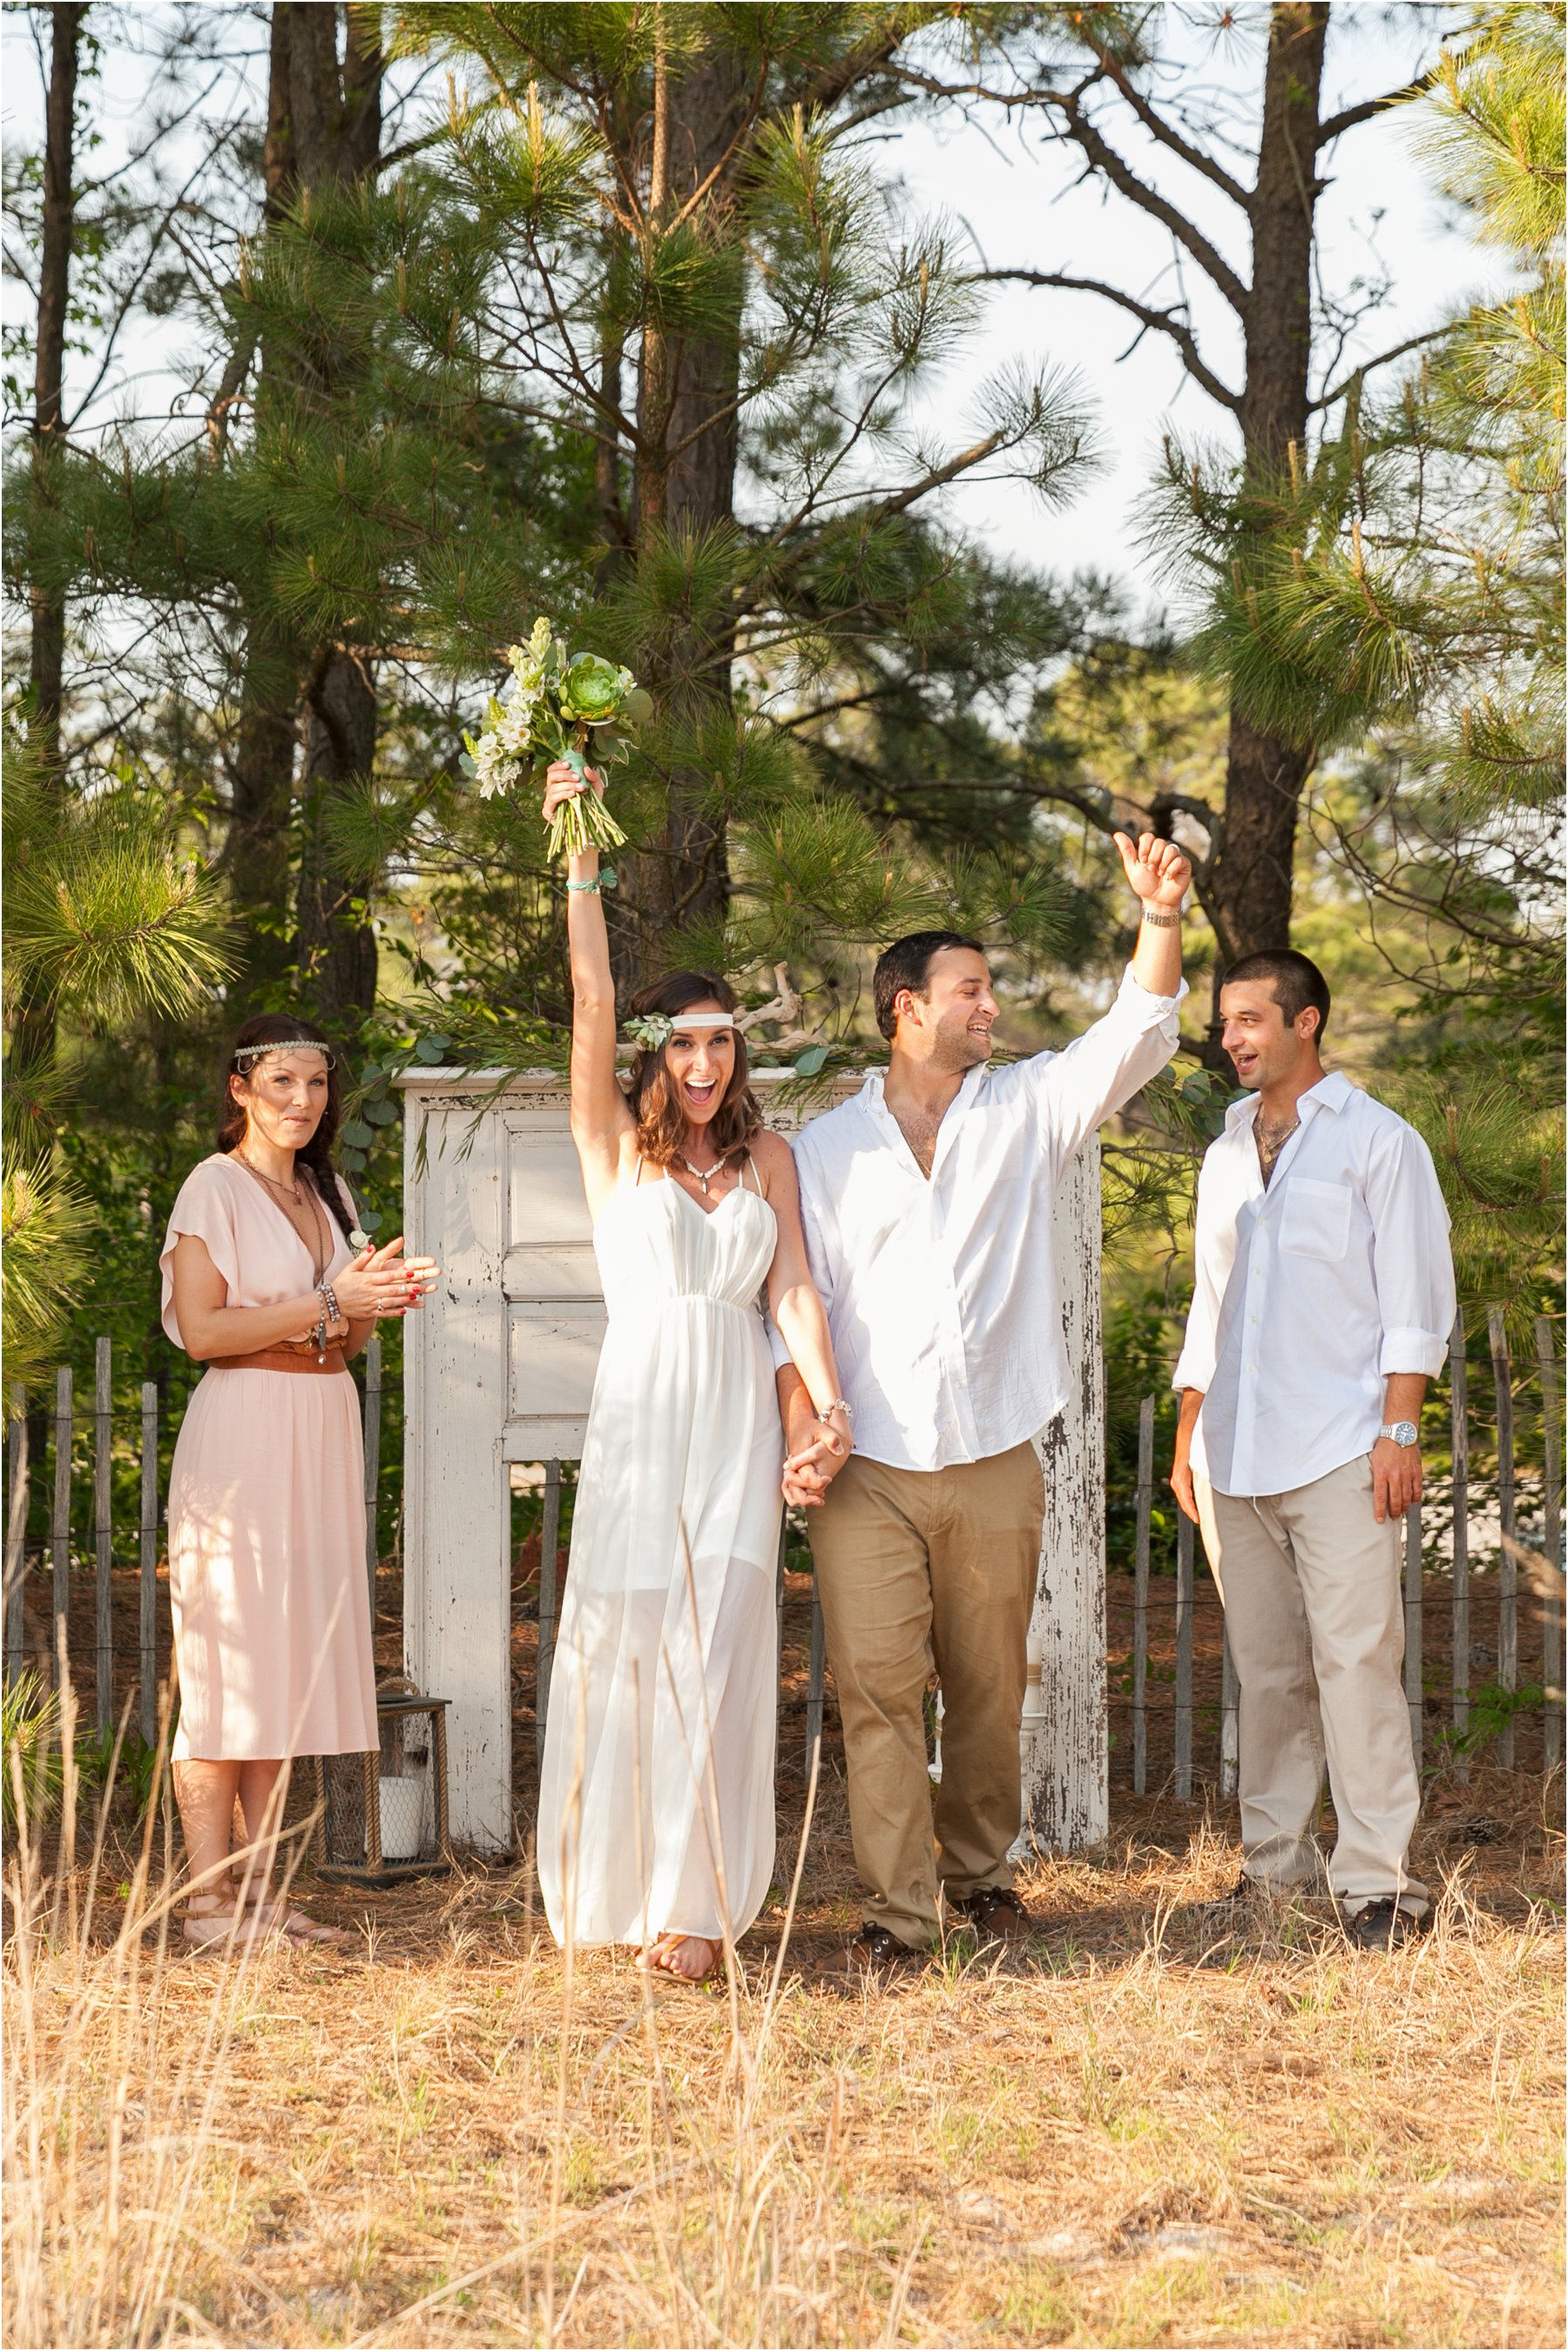 Nofolk_Zoo_engagement_photography_virginia_Jessica_ryan_photography_0155